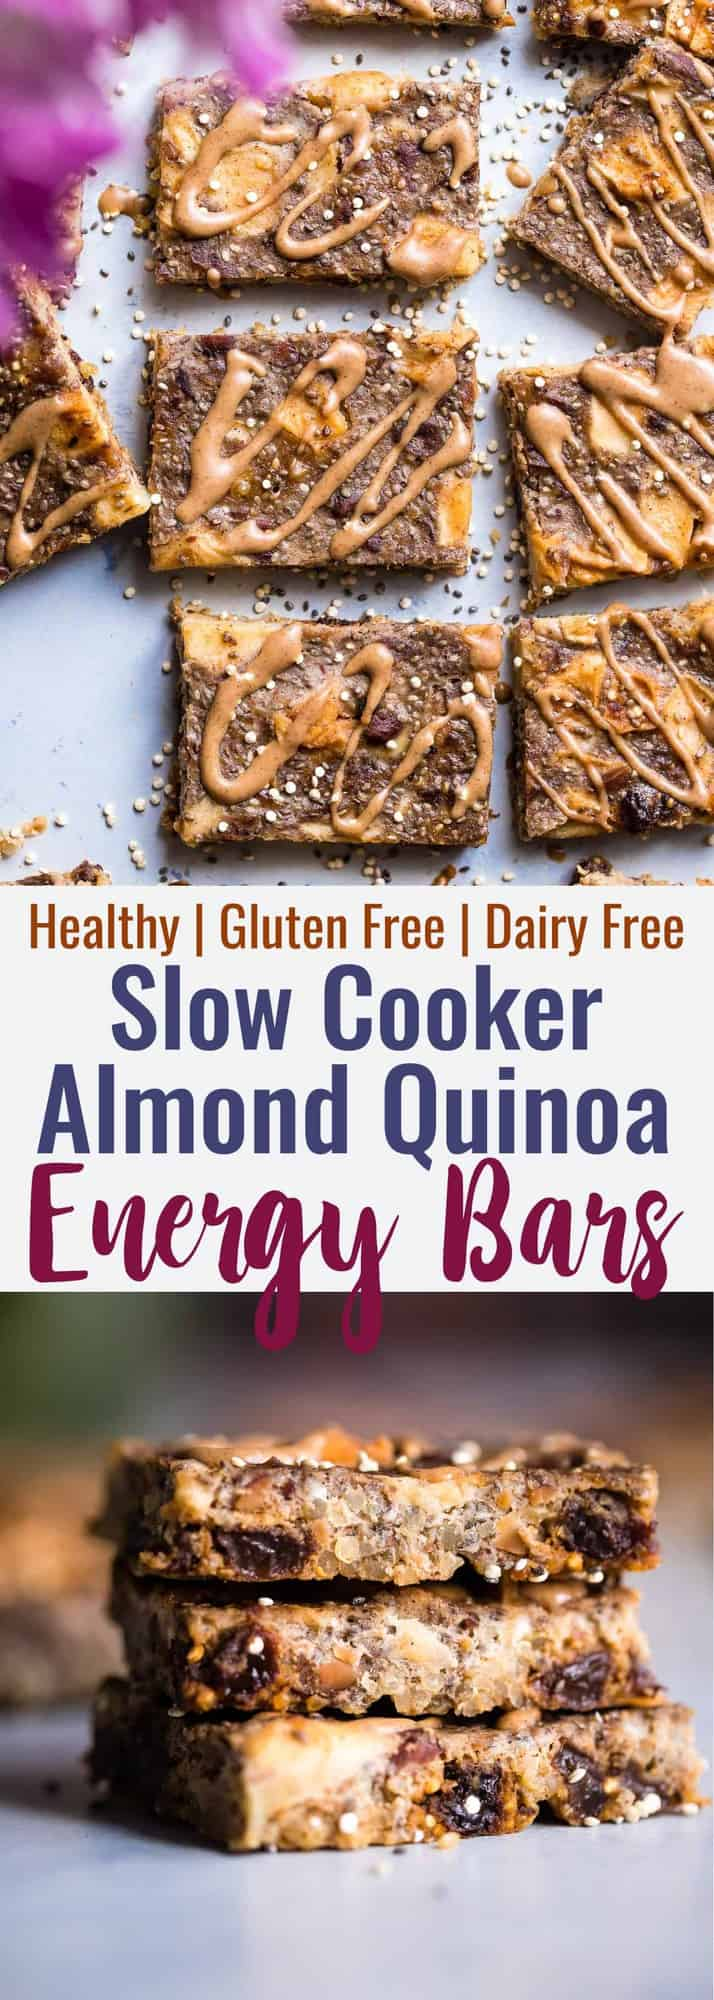 Healthy Quinoa Breakfast Bars in the Slow Cooker - The slow cooker basically makes these energy quinoa breakfast bars for you! Gluten and dairy free and loaded with fiber to keep you full! Great for snacks too! | #Foodfaithfitness | #Glutenfree #Dairyfree #Healthy #Slowcooker #Crockpot